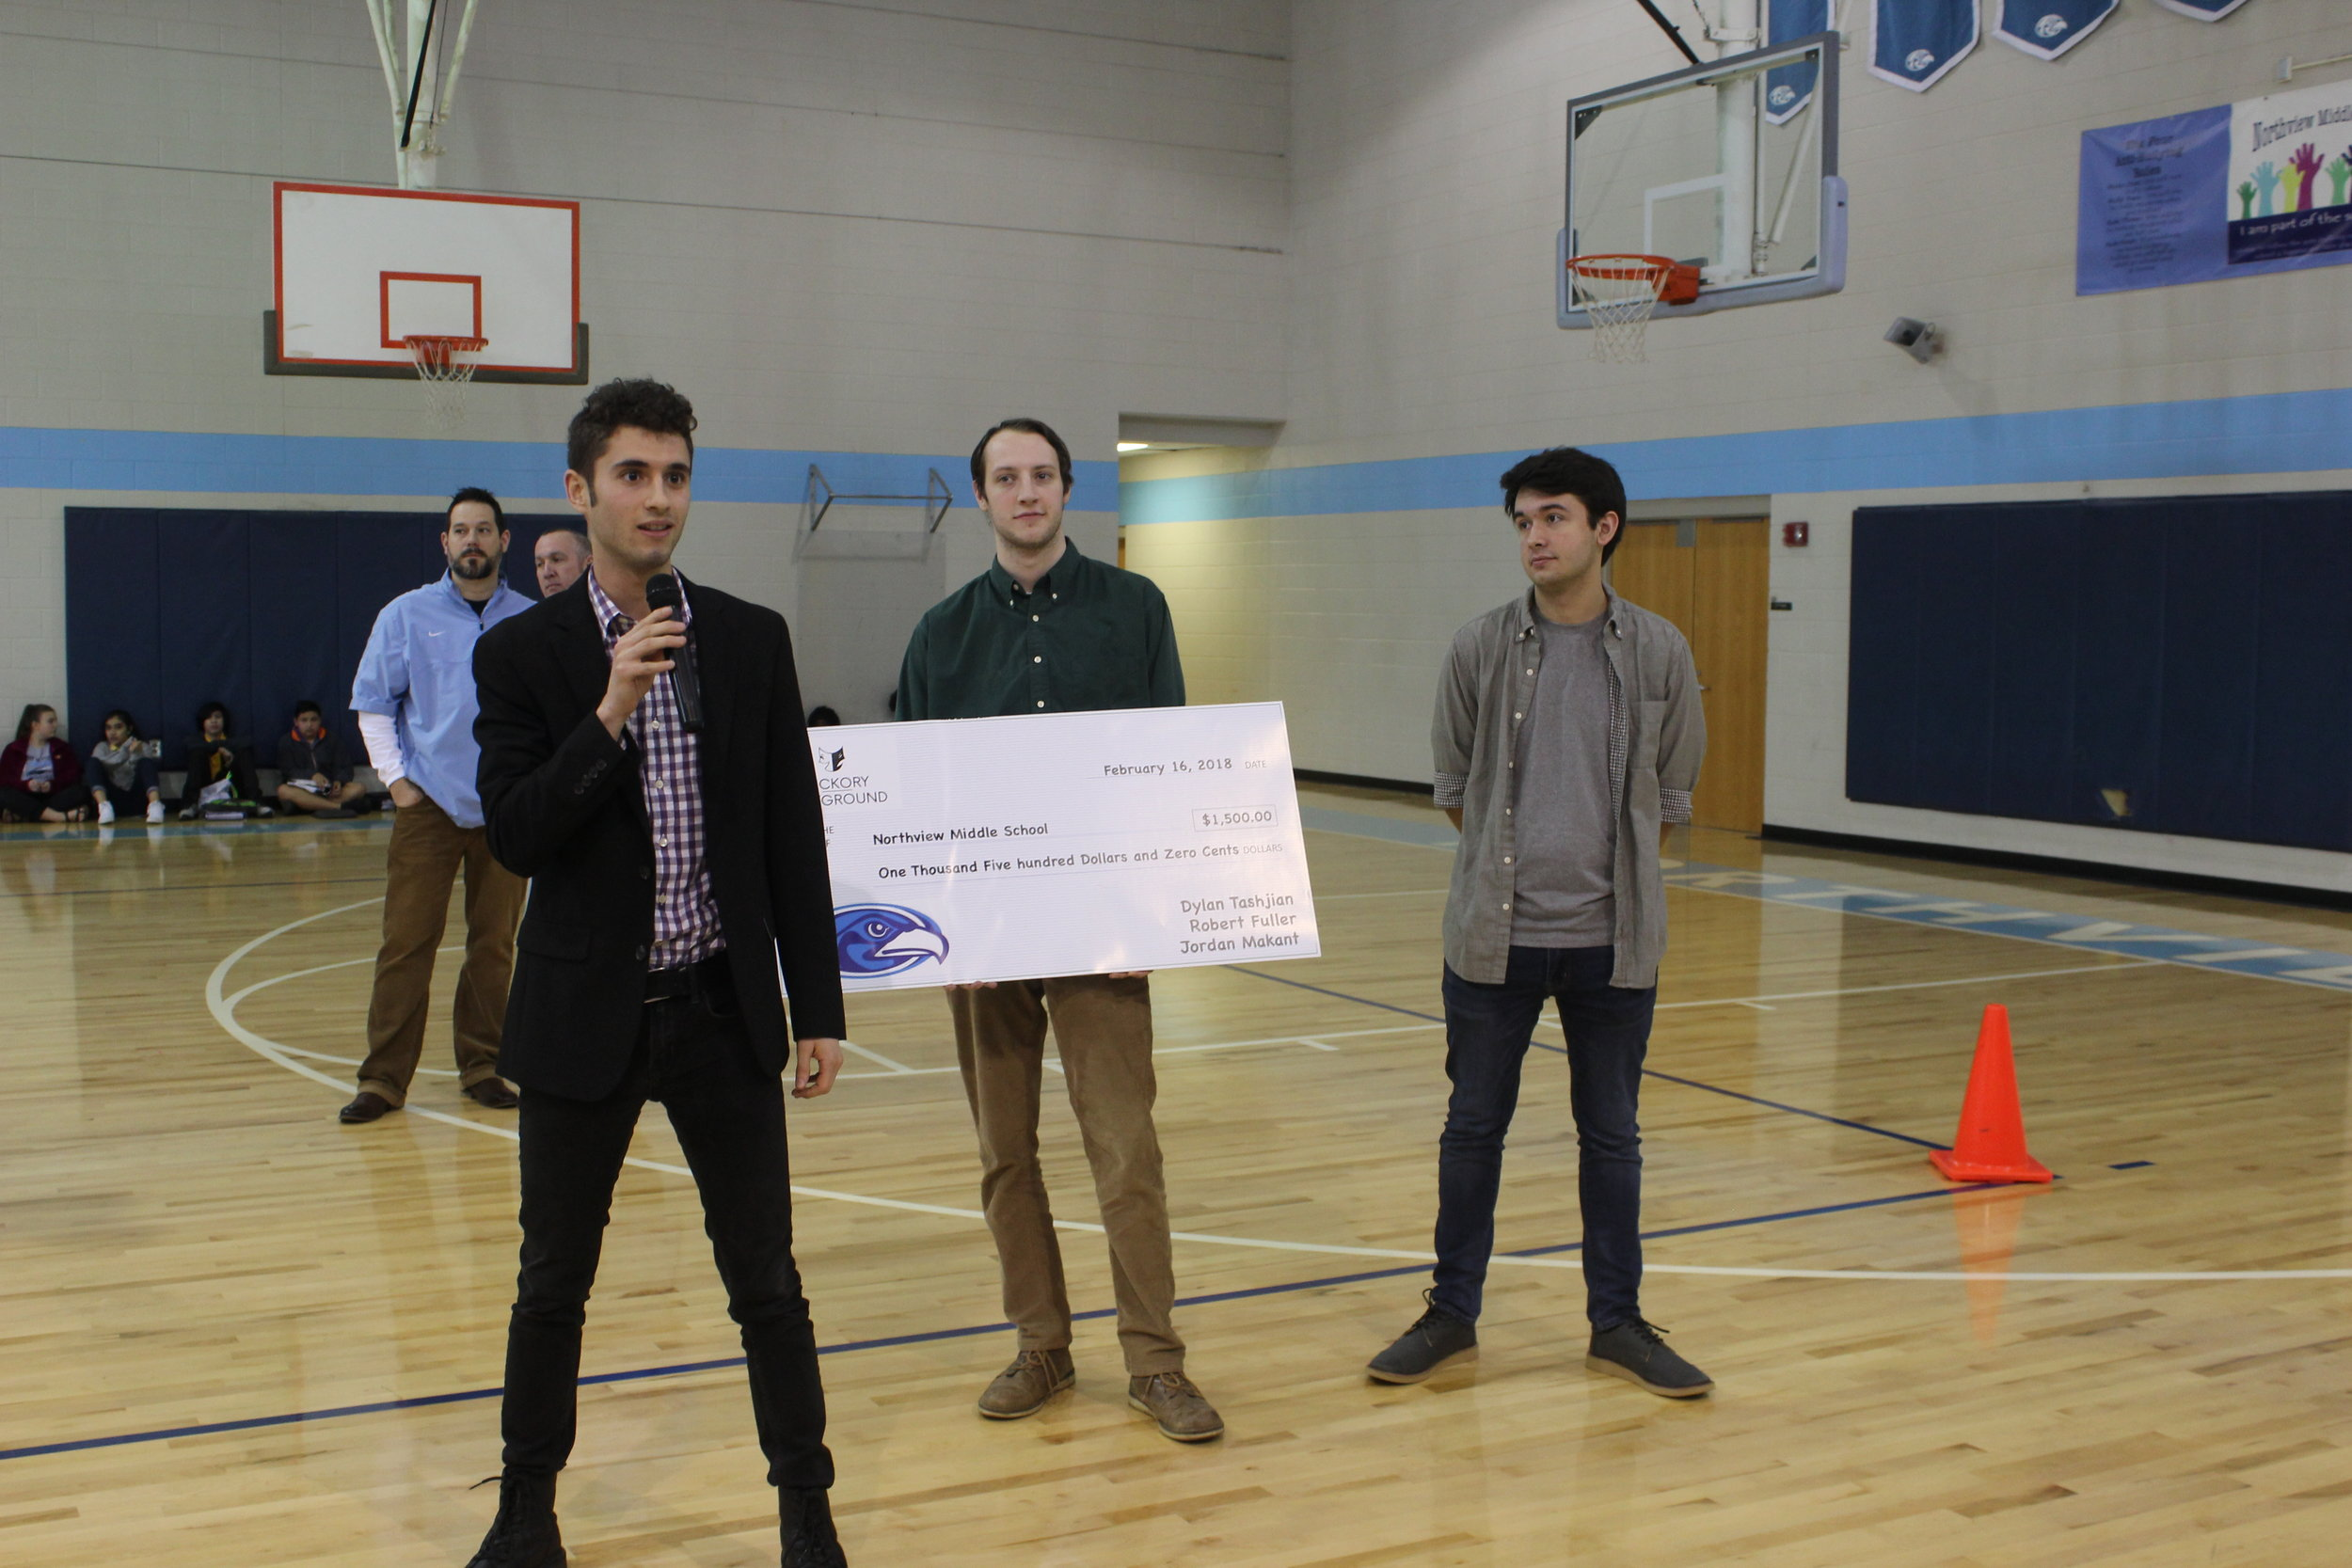 Dylan Tashjian (left), Robert Fuller (center), and Jordan Makant (right) present an oversized check to a school and talk to the students about the importance of the arts in 2017.